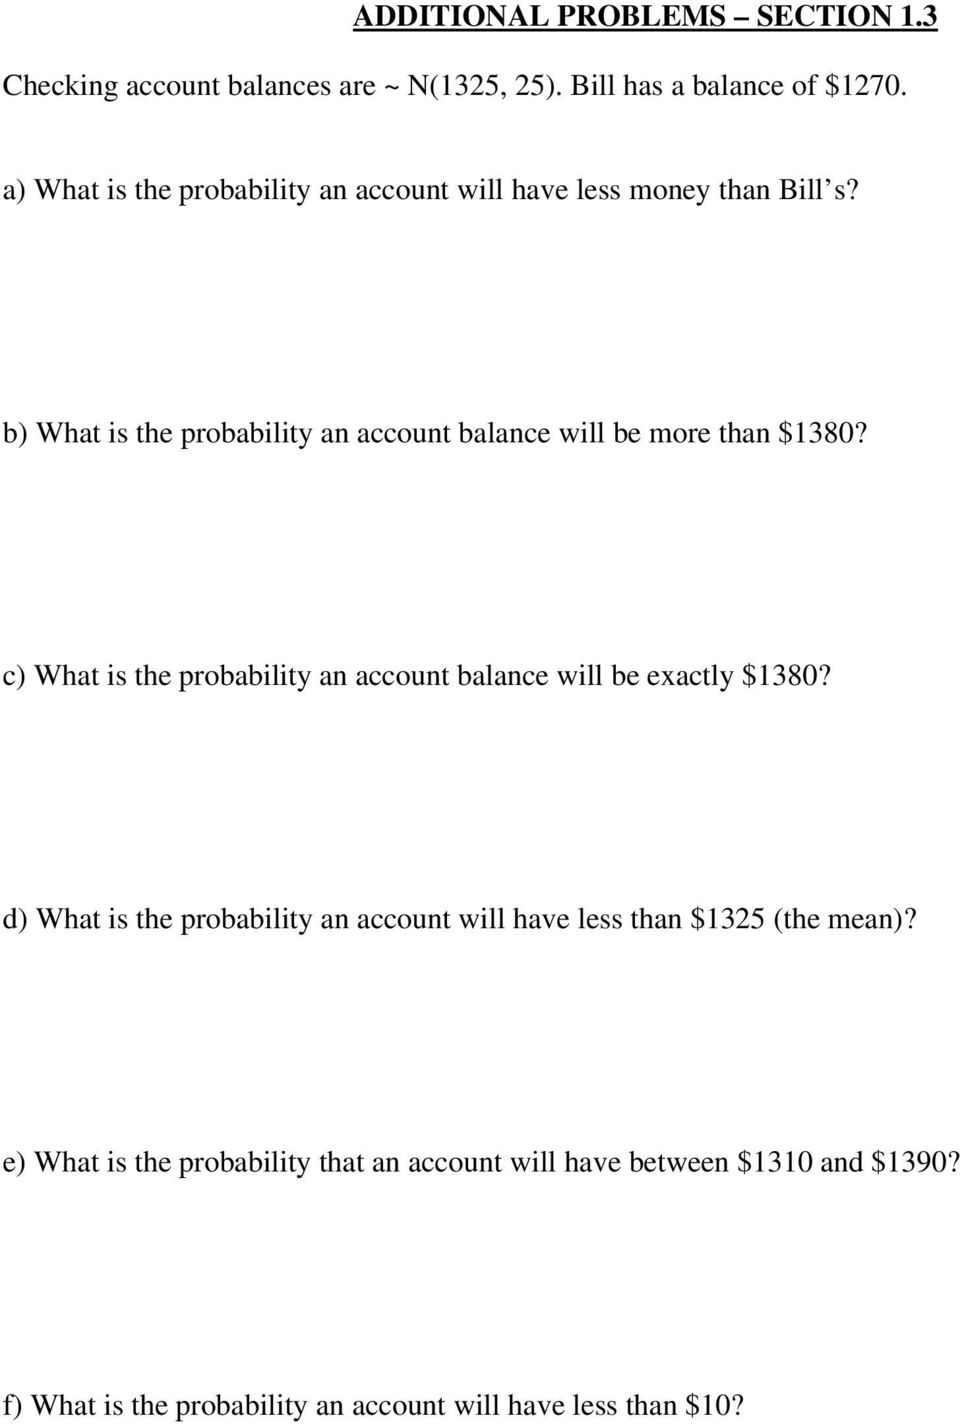 b) What is the probability an account balance will be more than $1380?